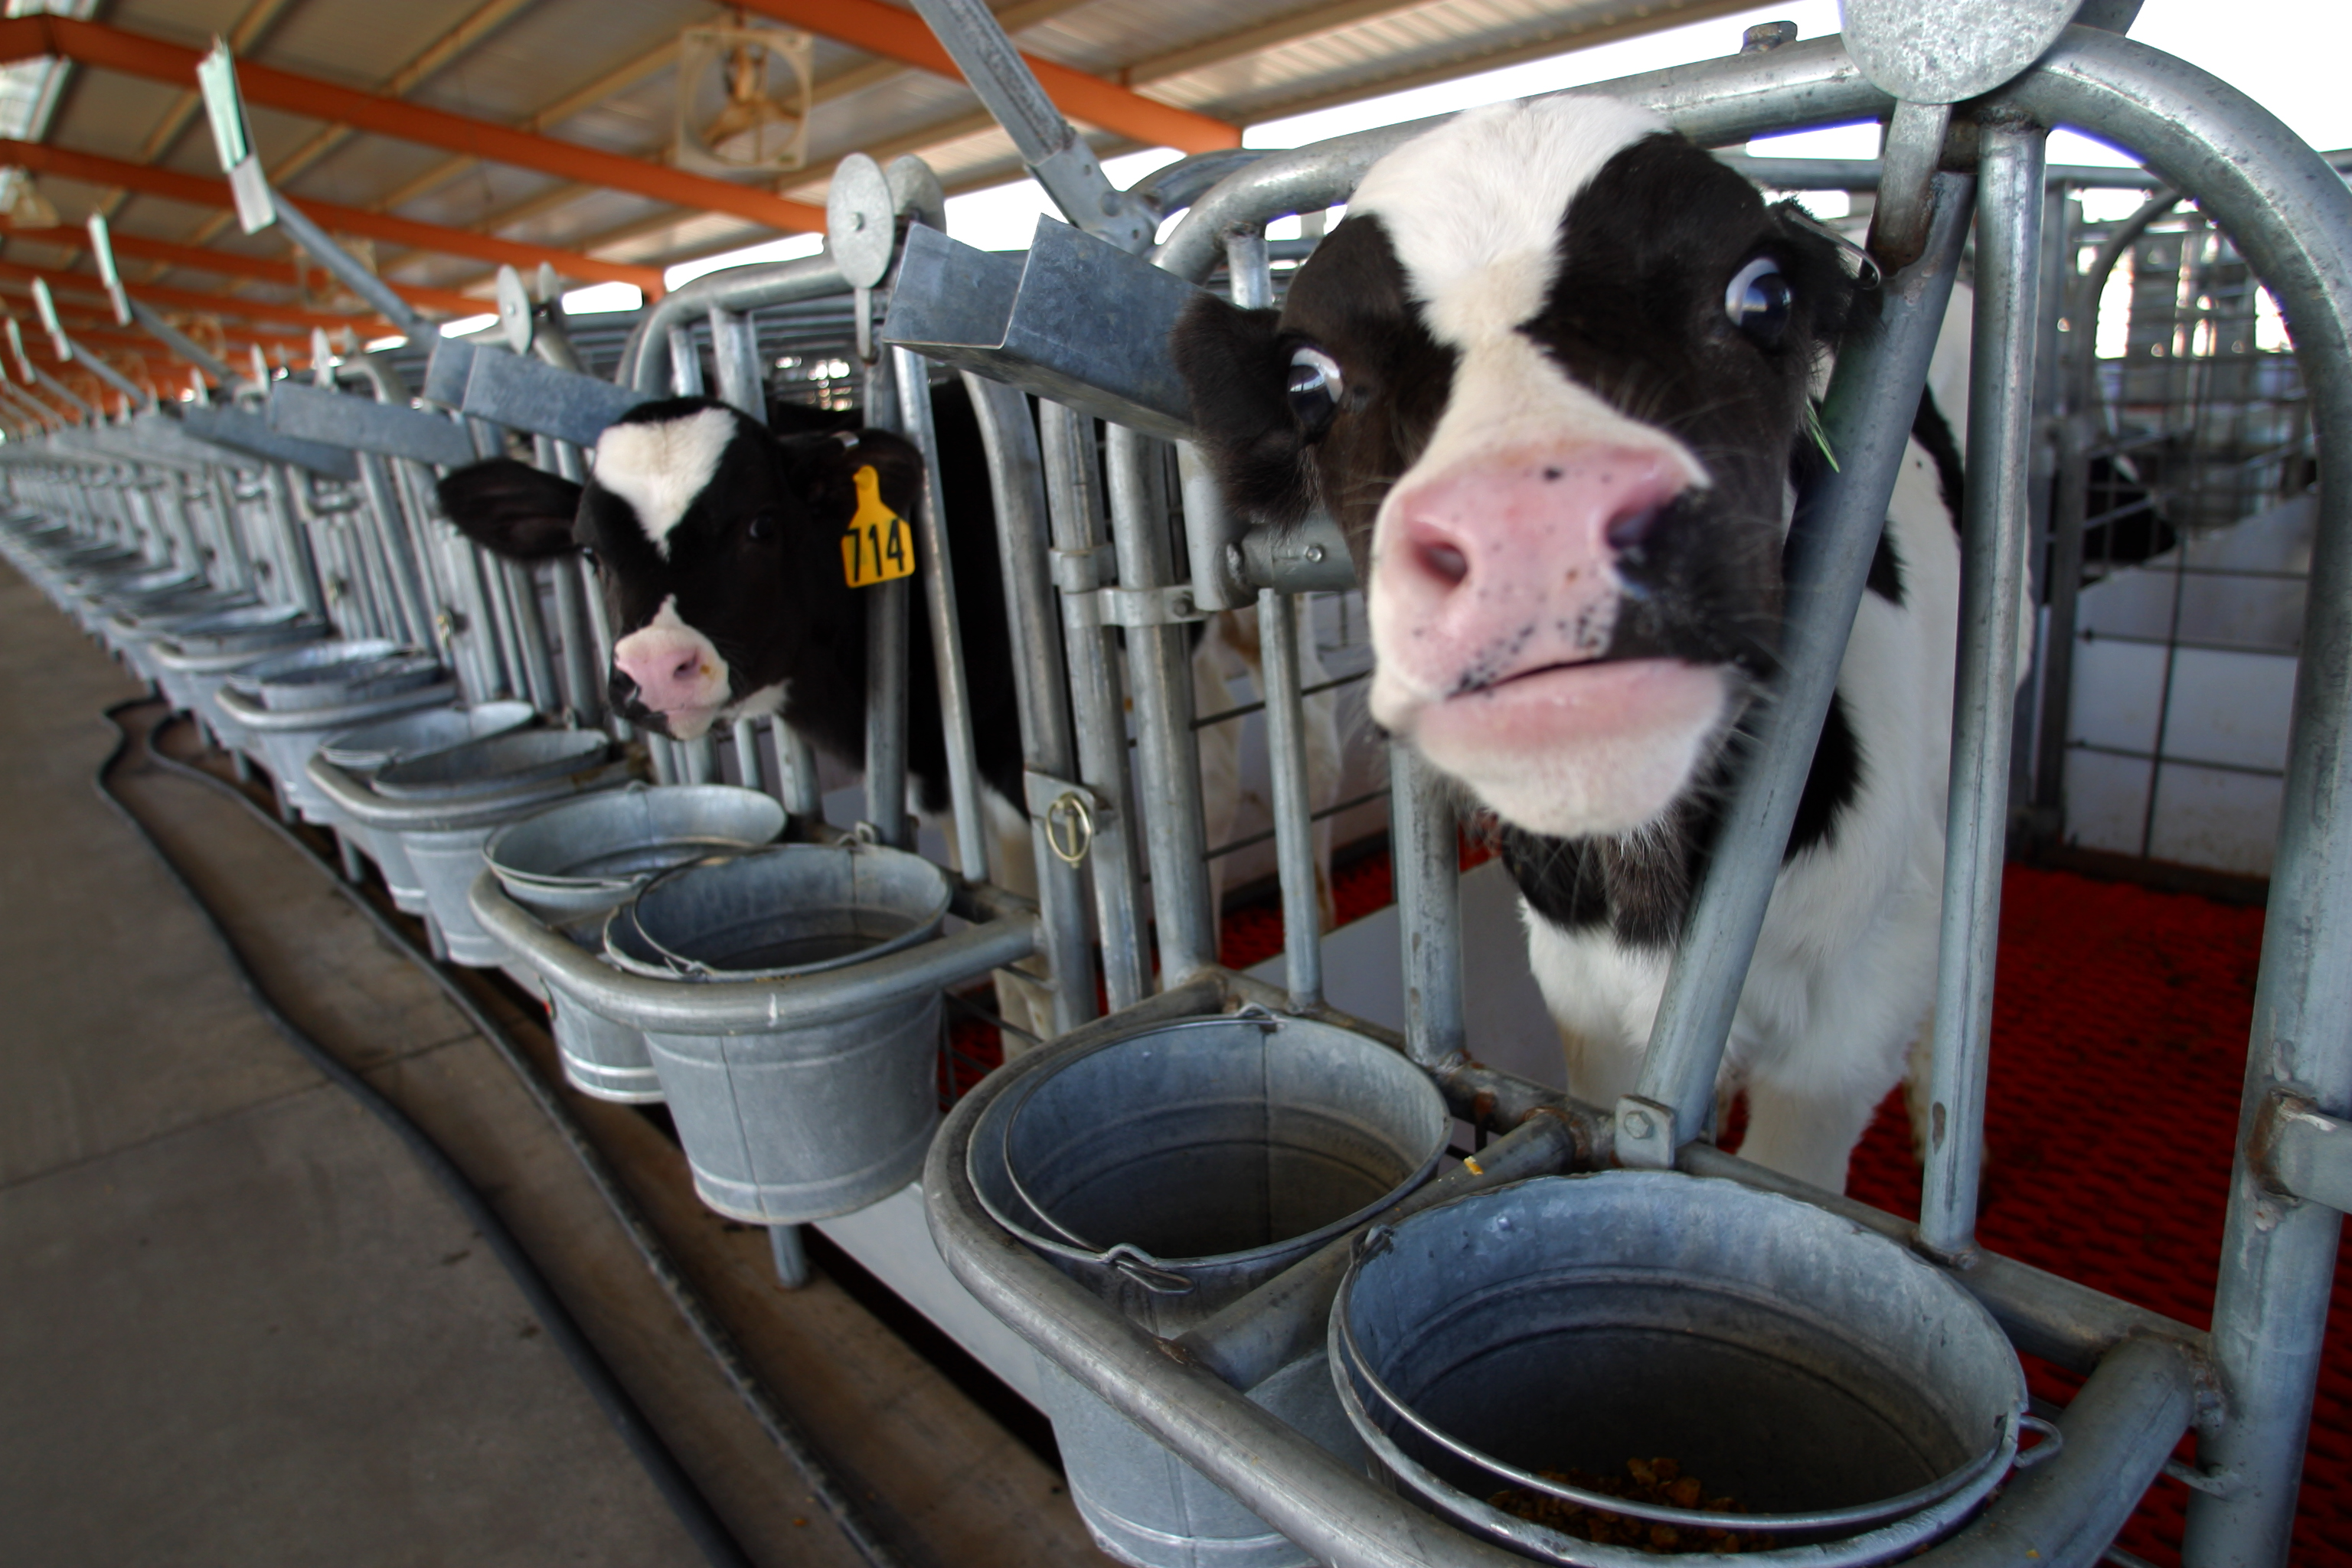 11 MARCH 2003 -- BUCKEYE, ARIZONA: A Holstein calves at the Triple G Dairy in Buckeye, AZ, March 11, 2003. The Triple G is one the most technologically advanced dairies in Arizona. More than 3,000 cows per day are milked at the dairy on two rotating carousels which hold 48 cows a piece. PHOTO BY JACK KURTZ